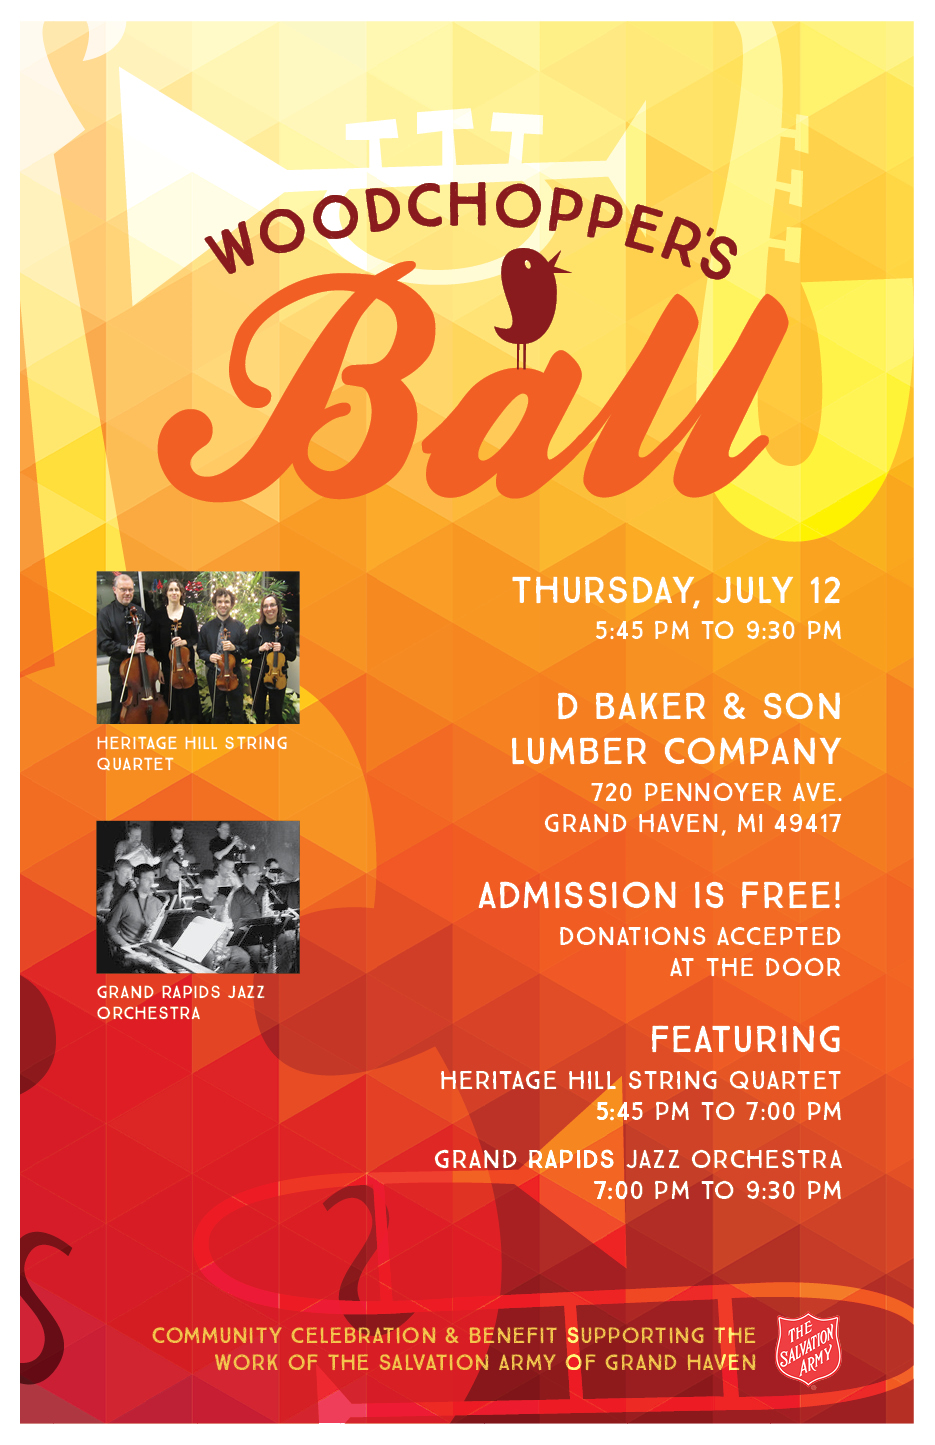 D. Baker U0026 Son Lumber Company Partners With The Salvation Army Of Grand  Haven For Woodchopperu0027s Ball Dance Fundraiser